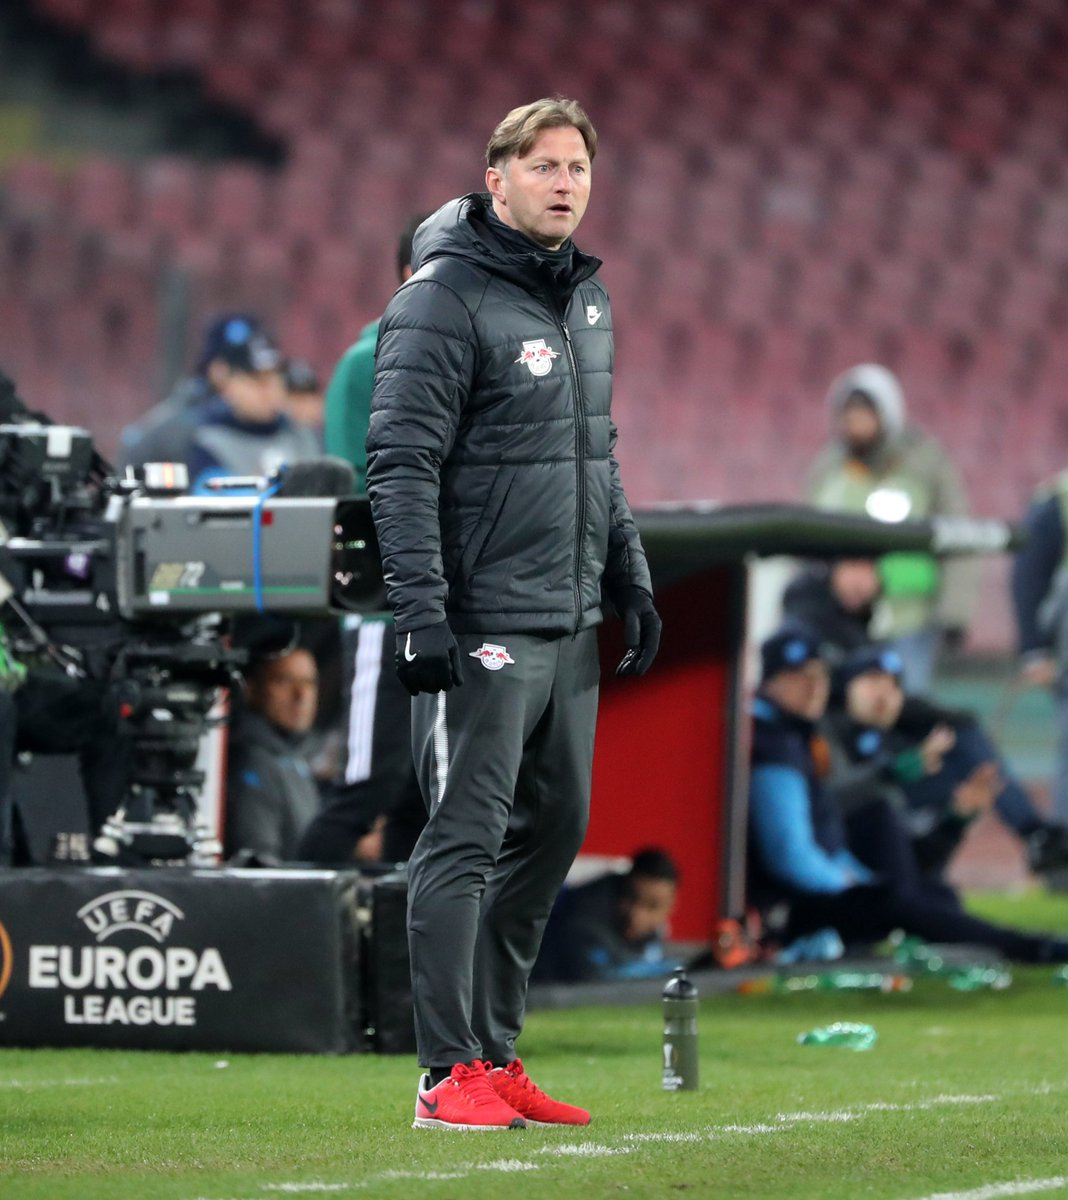 Rb Leipzig English On Twitter Ralph Hasenhuttl When You Play Teams Like Bvb Everything Has To Go Right It Ll Come Down To The Small Things Which We Have To Do Better Than